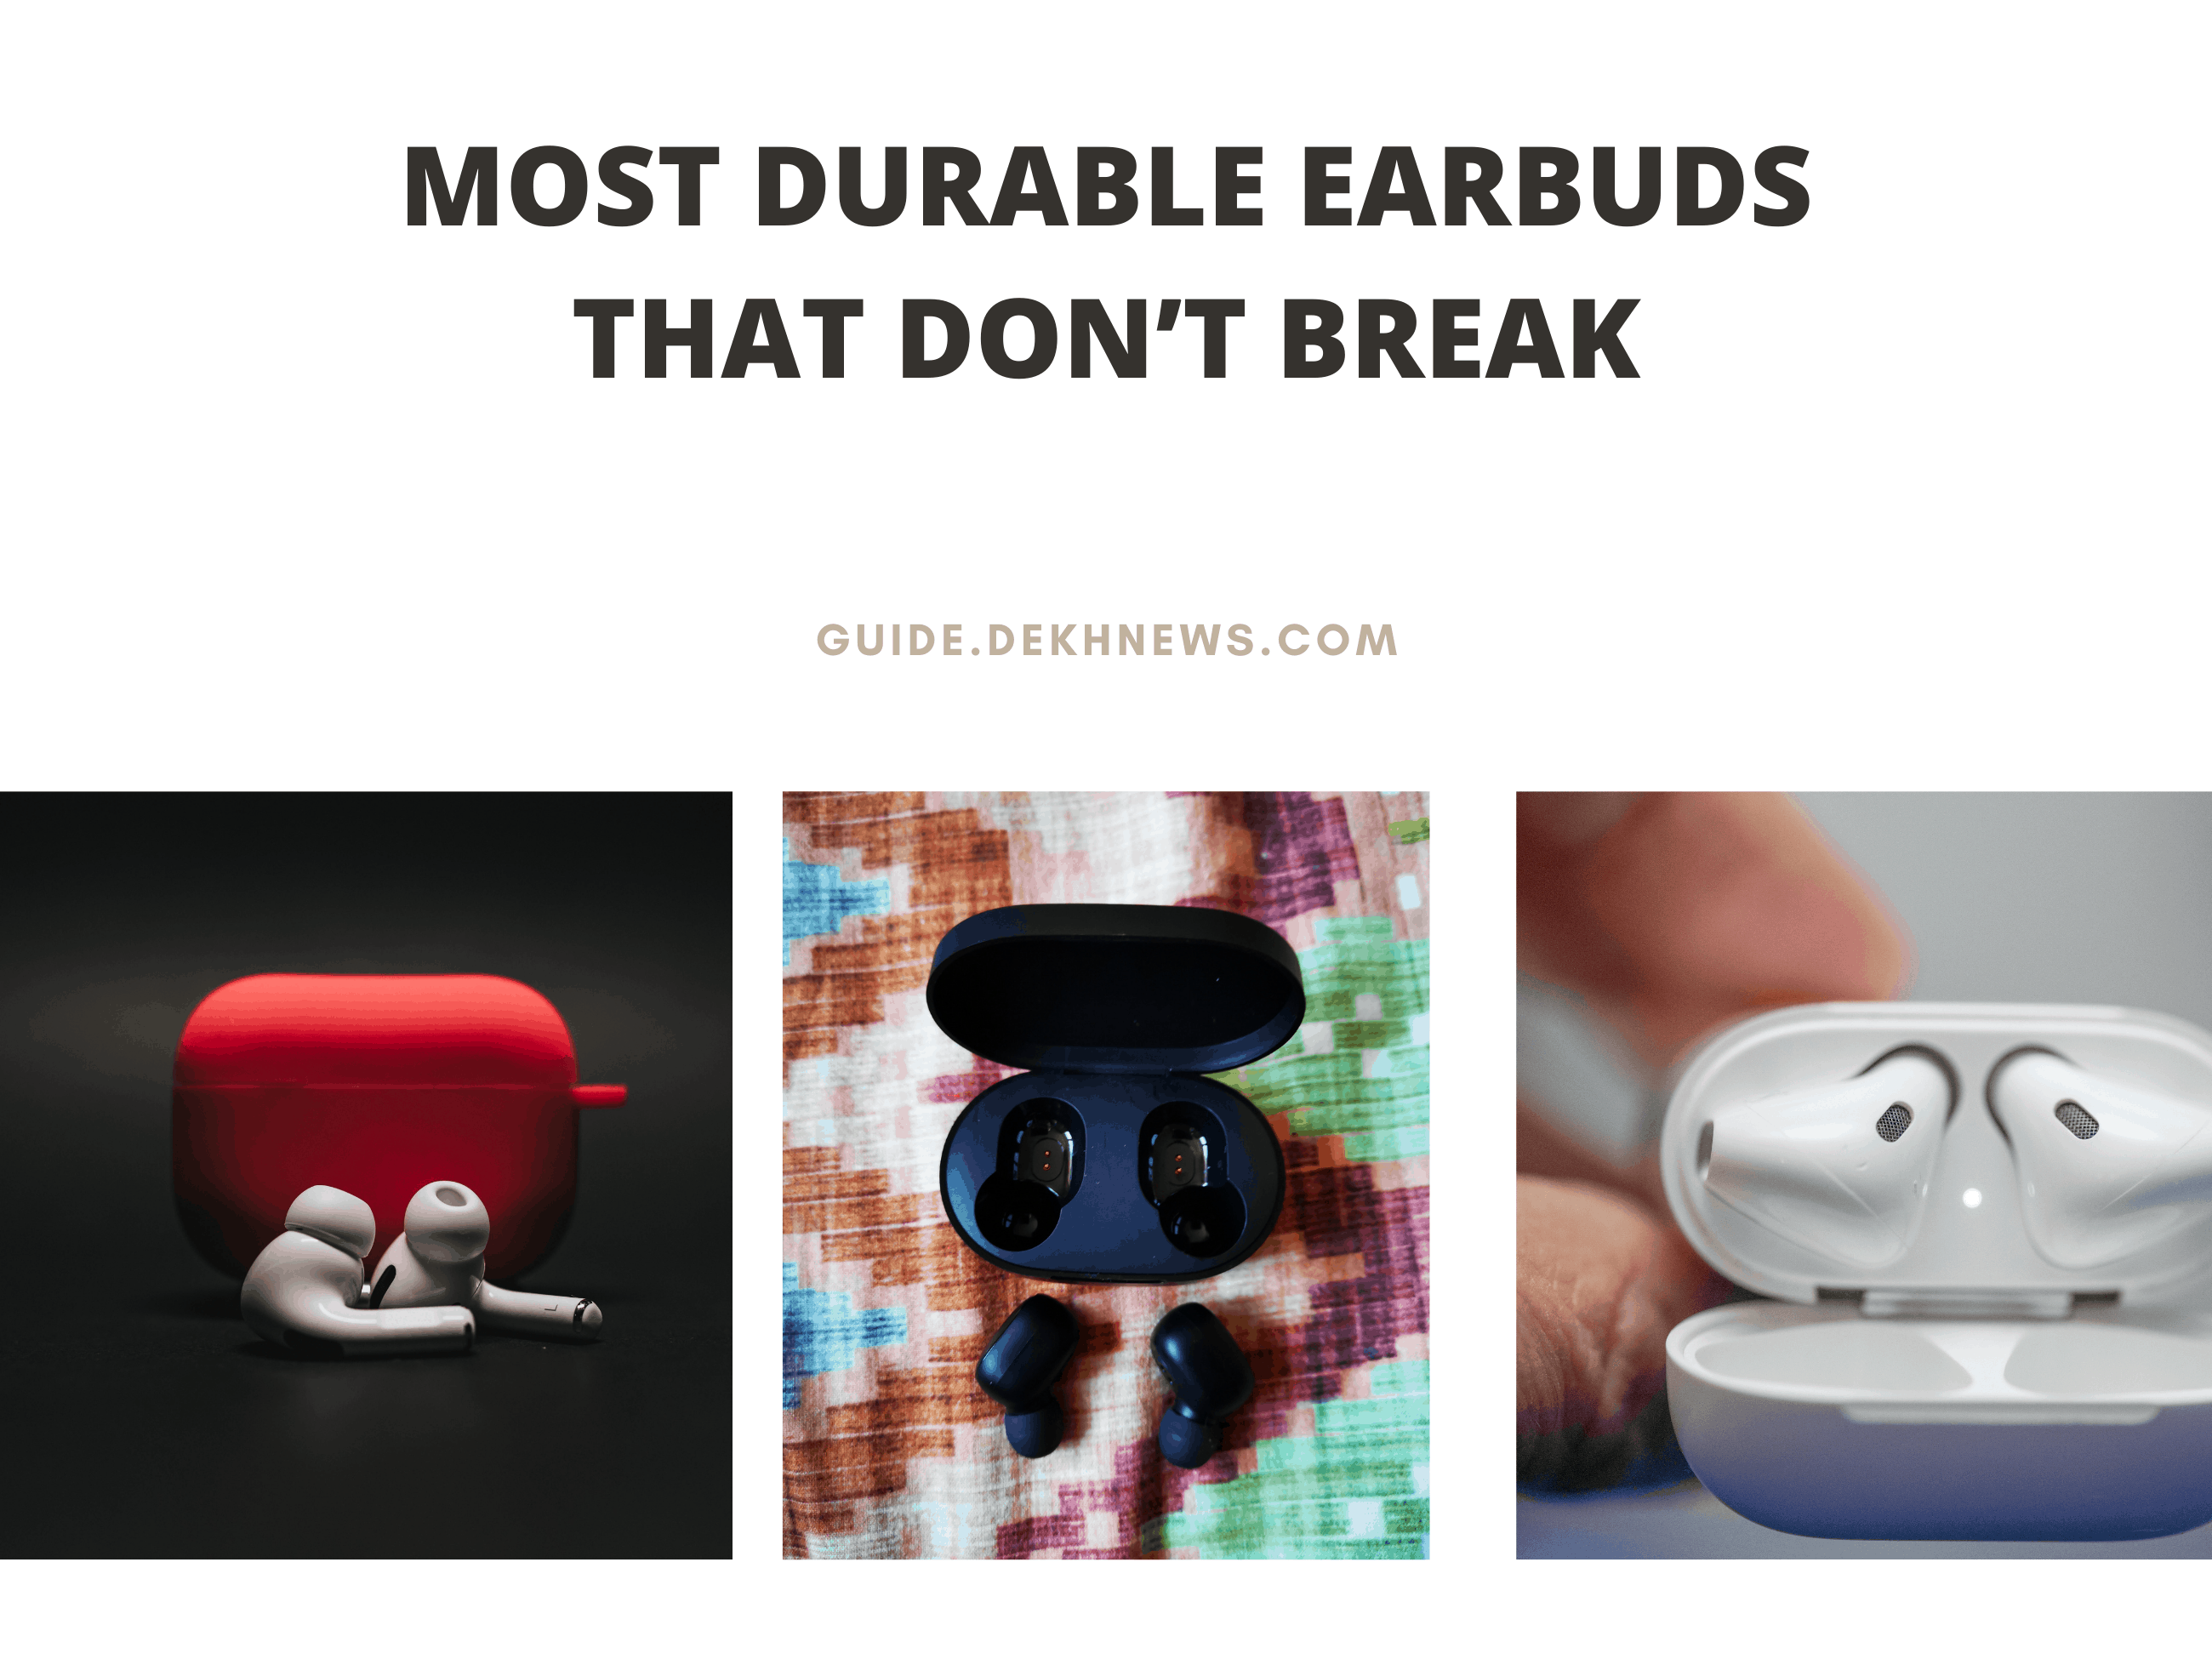 Most Durable Earbuds That Don't Break